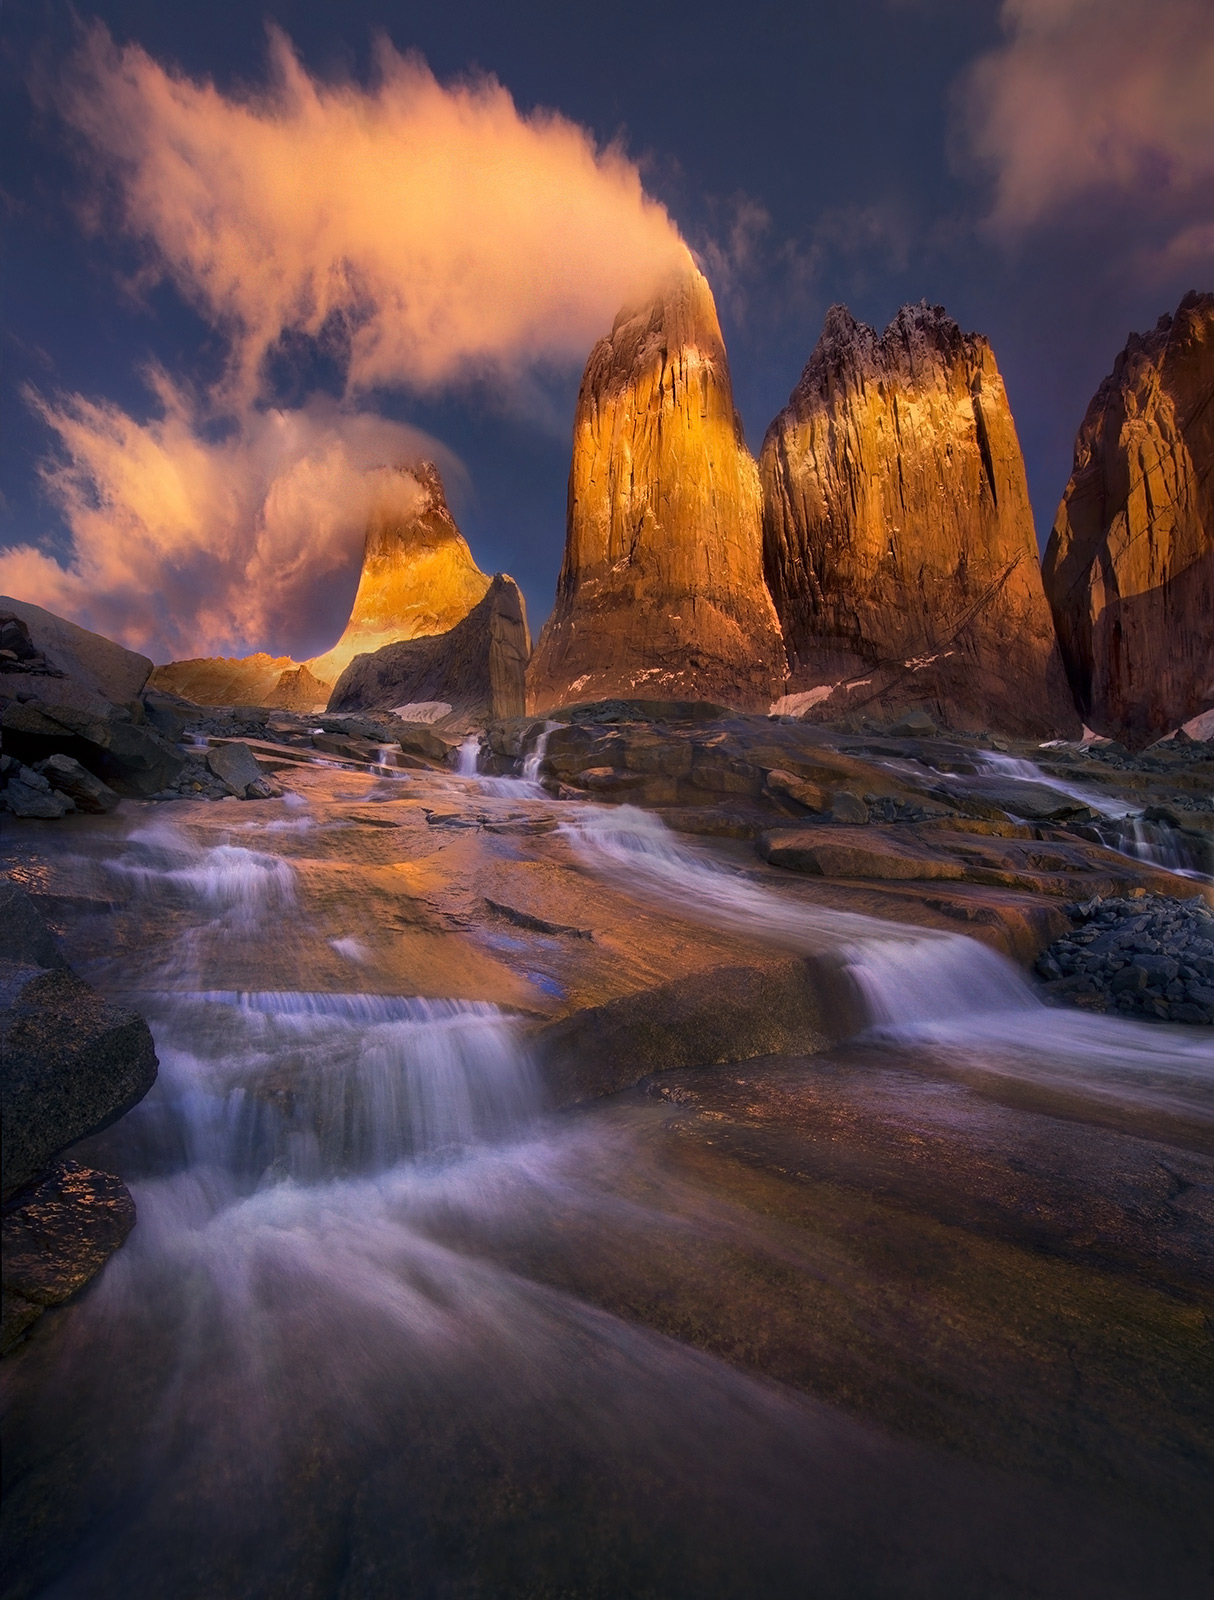 Sunrise, Three Towers, Chile, Unique, Stream, photo